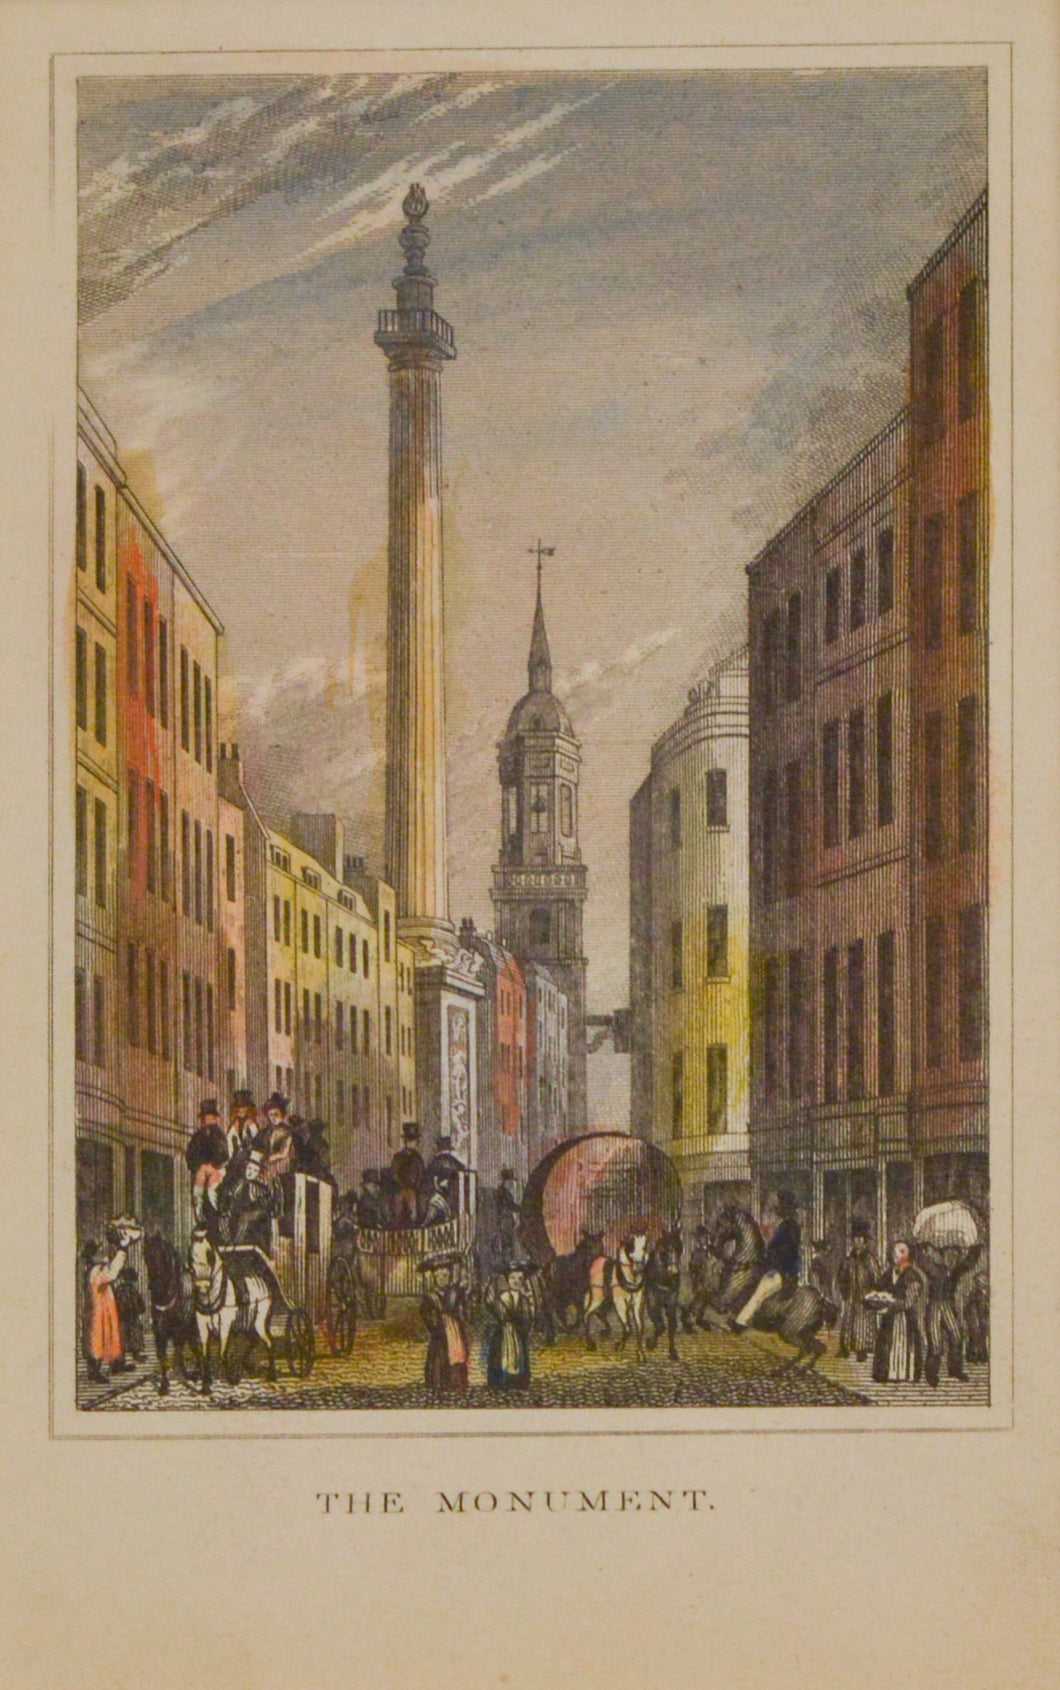 The Monument - Antique Steel Engraving circa 1828